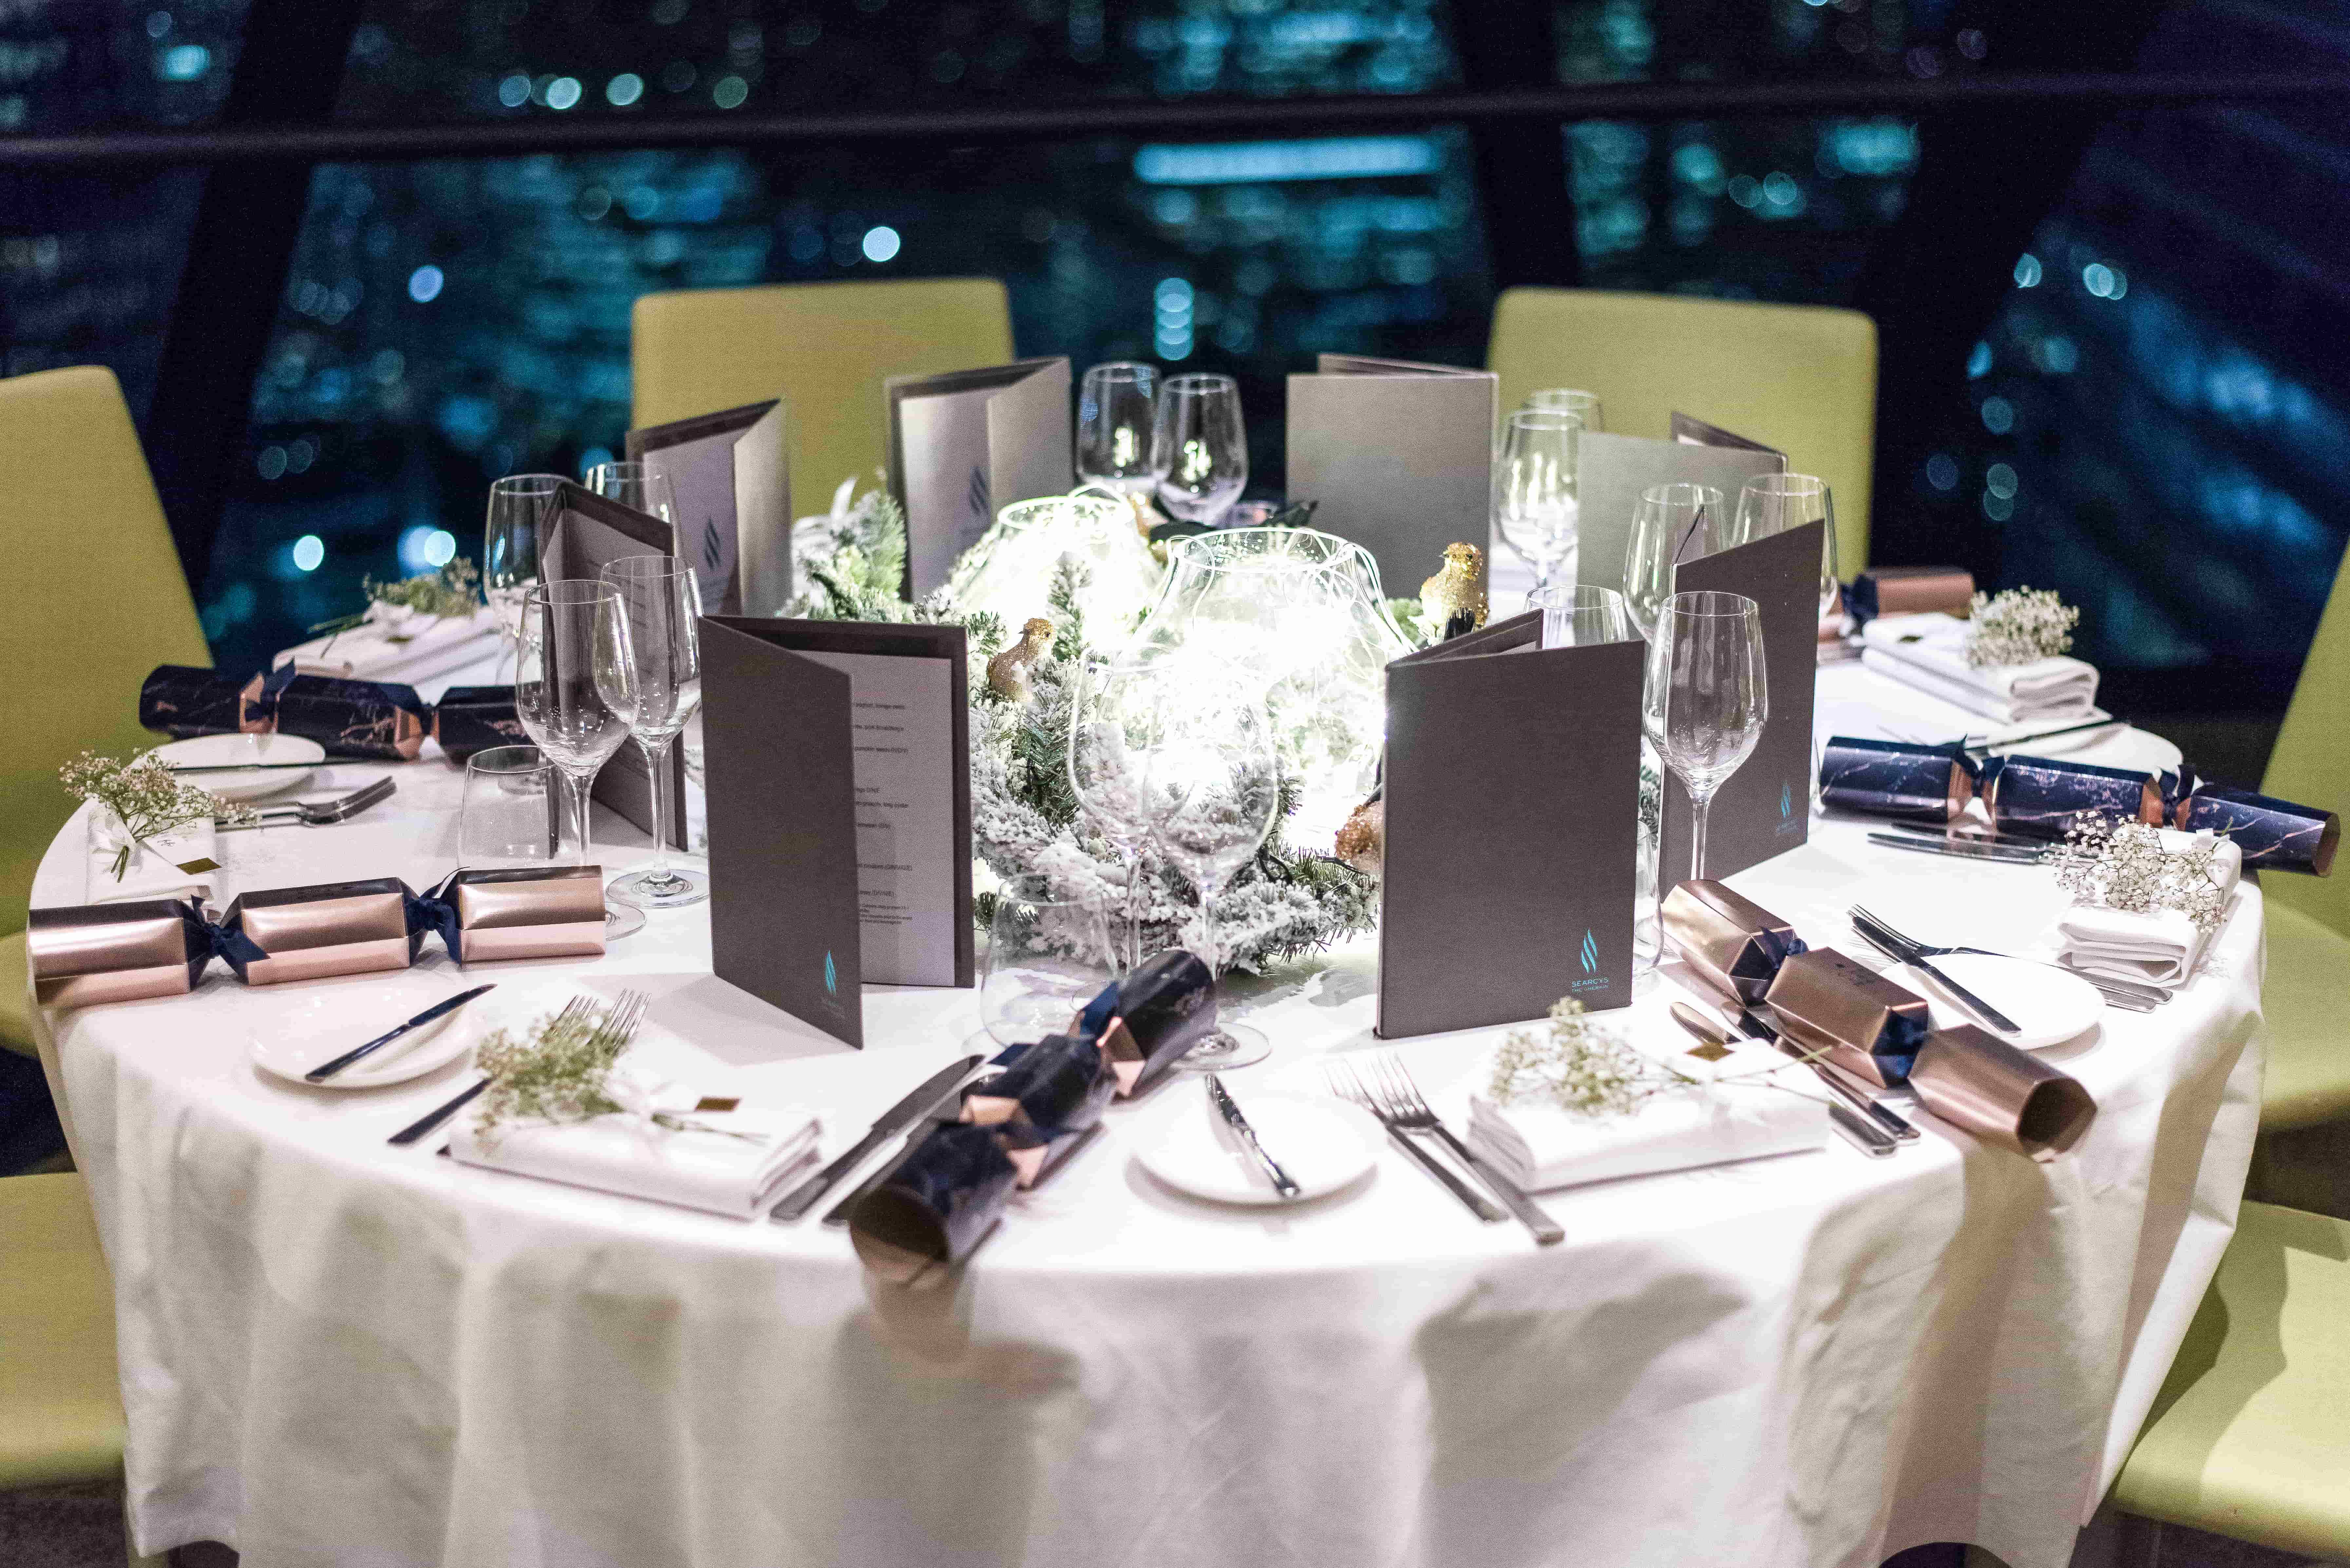 Christmas Dinner with House of Fraser - Searcys The Gherkin - Style and the Sass